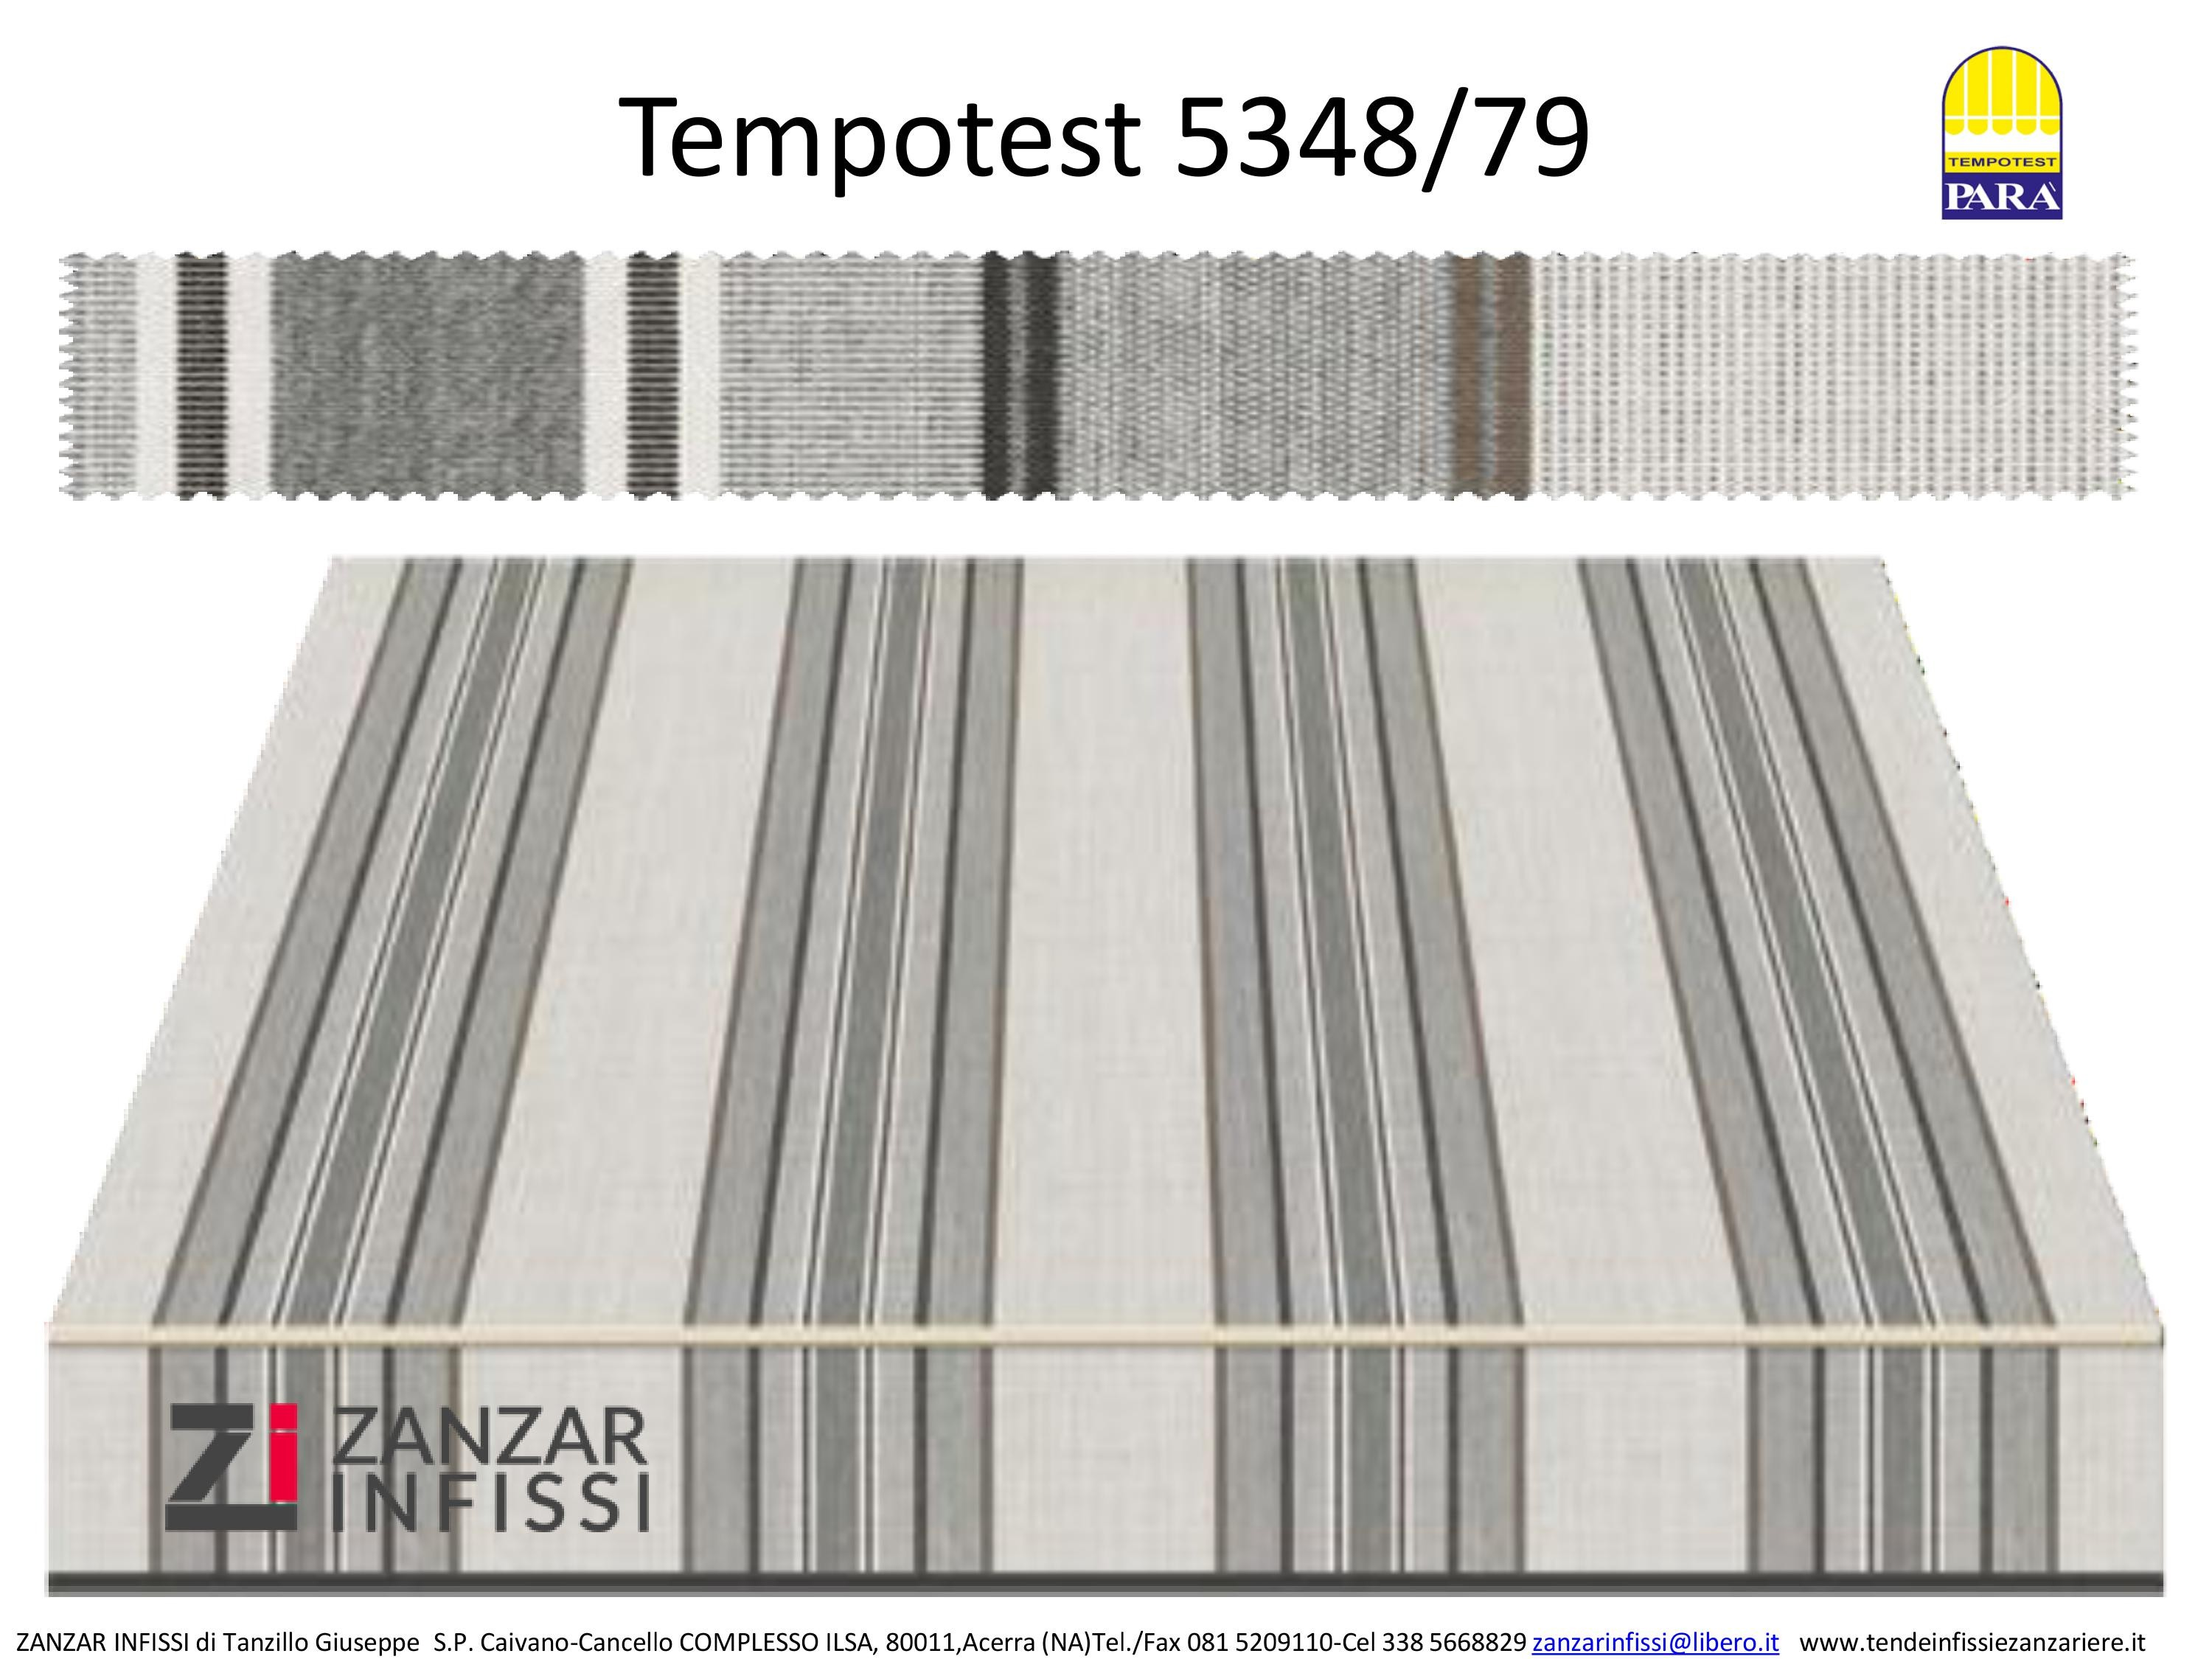 Tempotest 5348/79